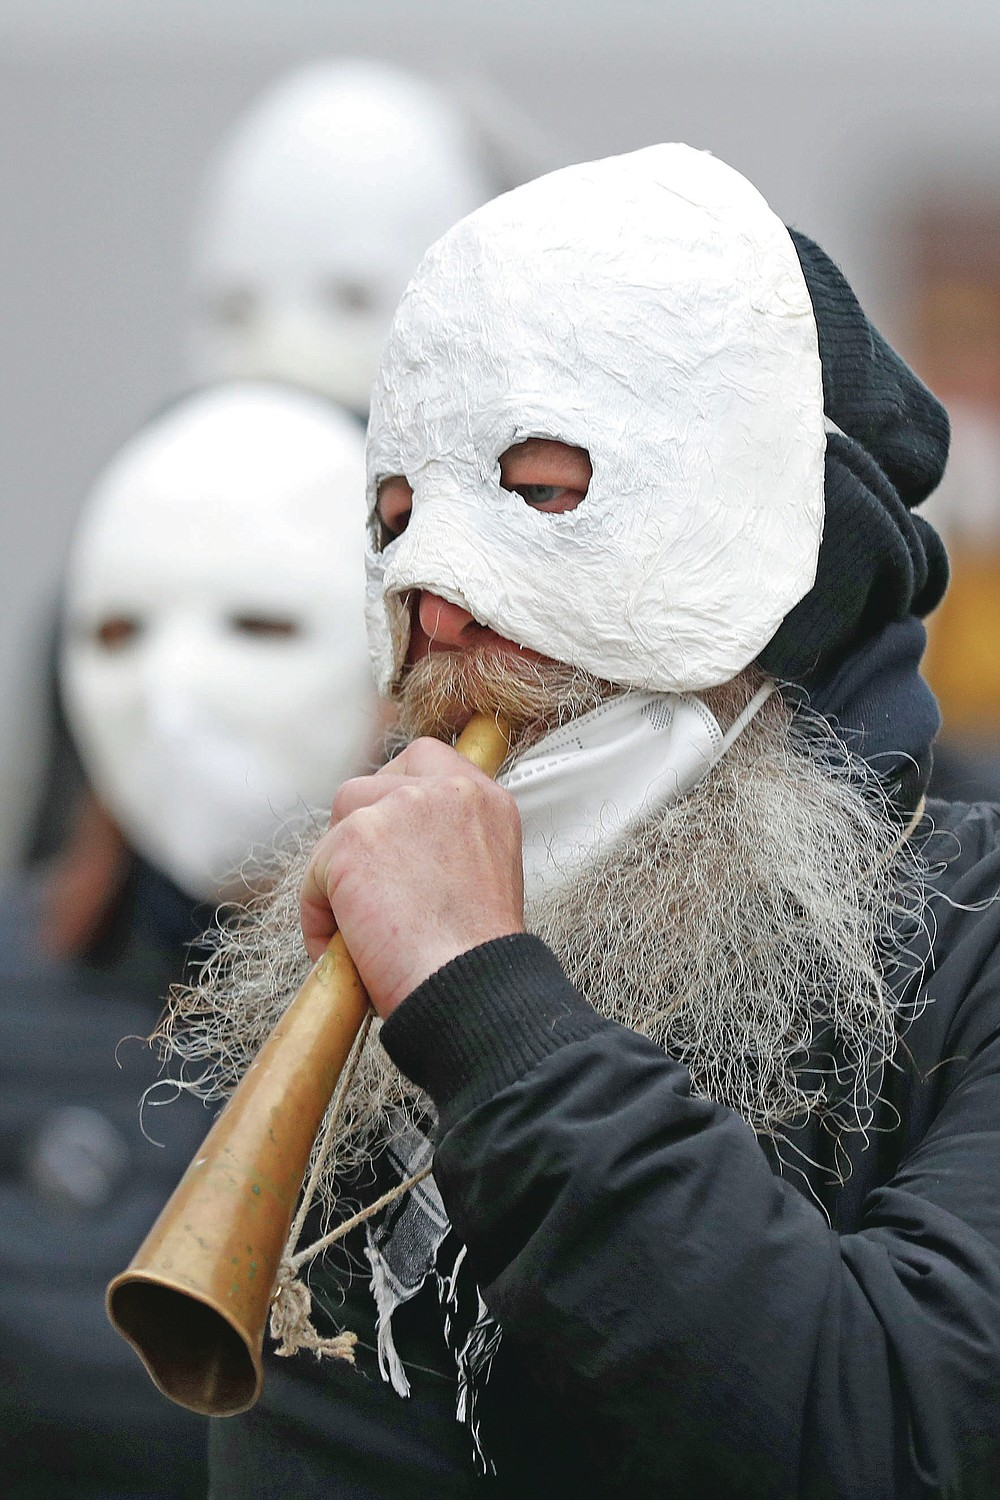 A participant blows a horn during an Easter procession marching through the streets in Ceske Budejovice, Czech Republic, Friday, April 2, 2021. (AP Photo/Petr David Josek)